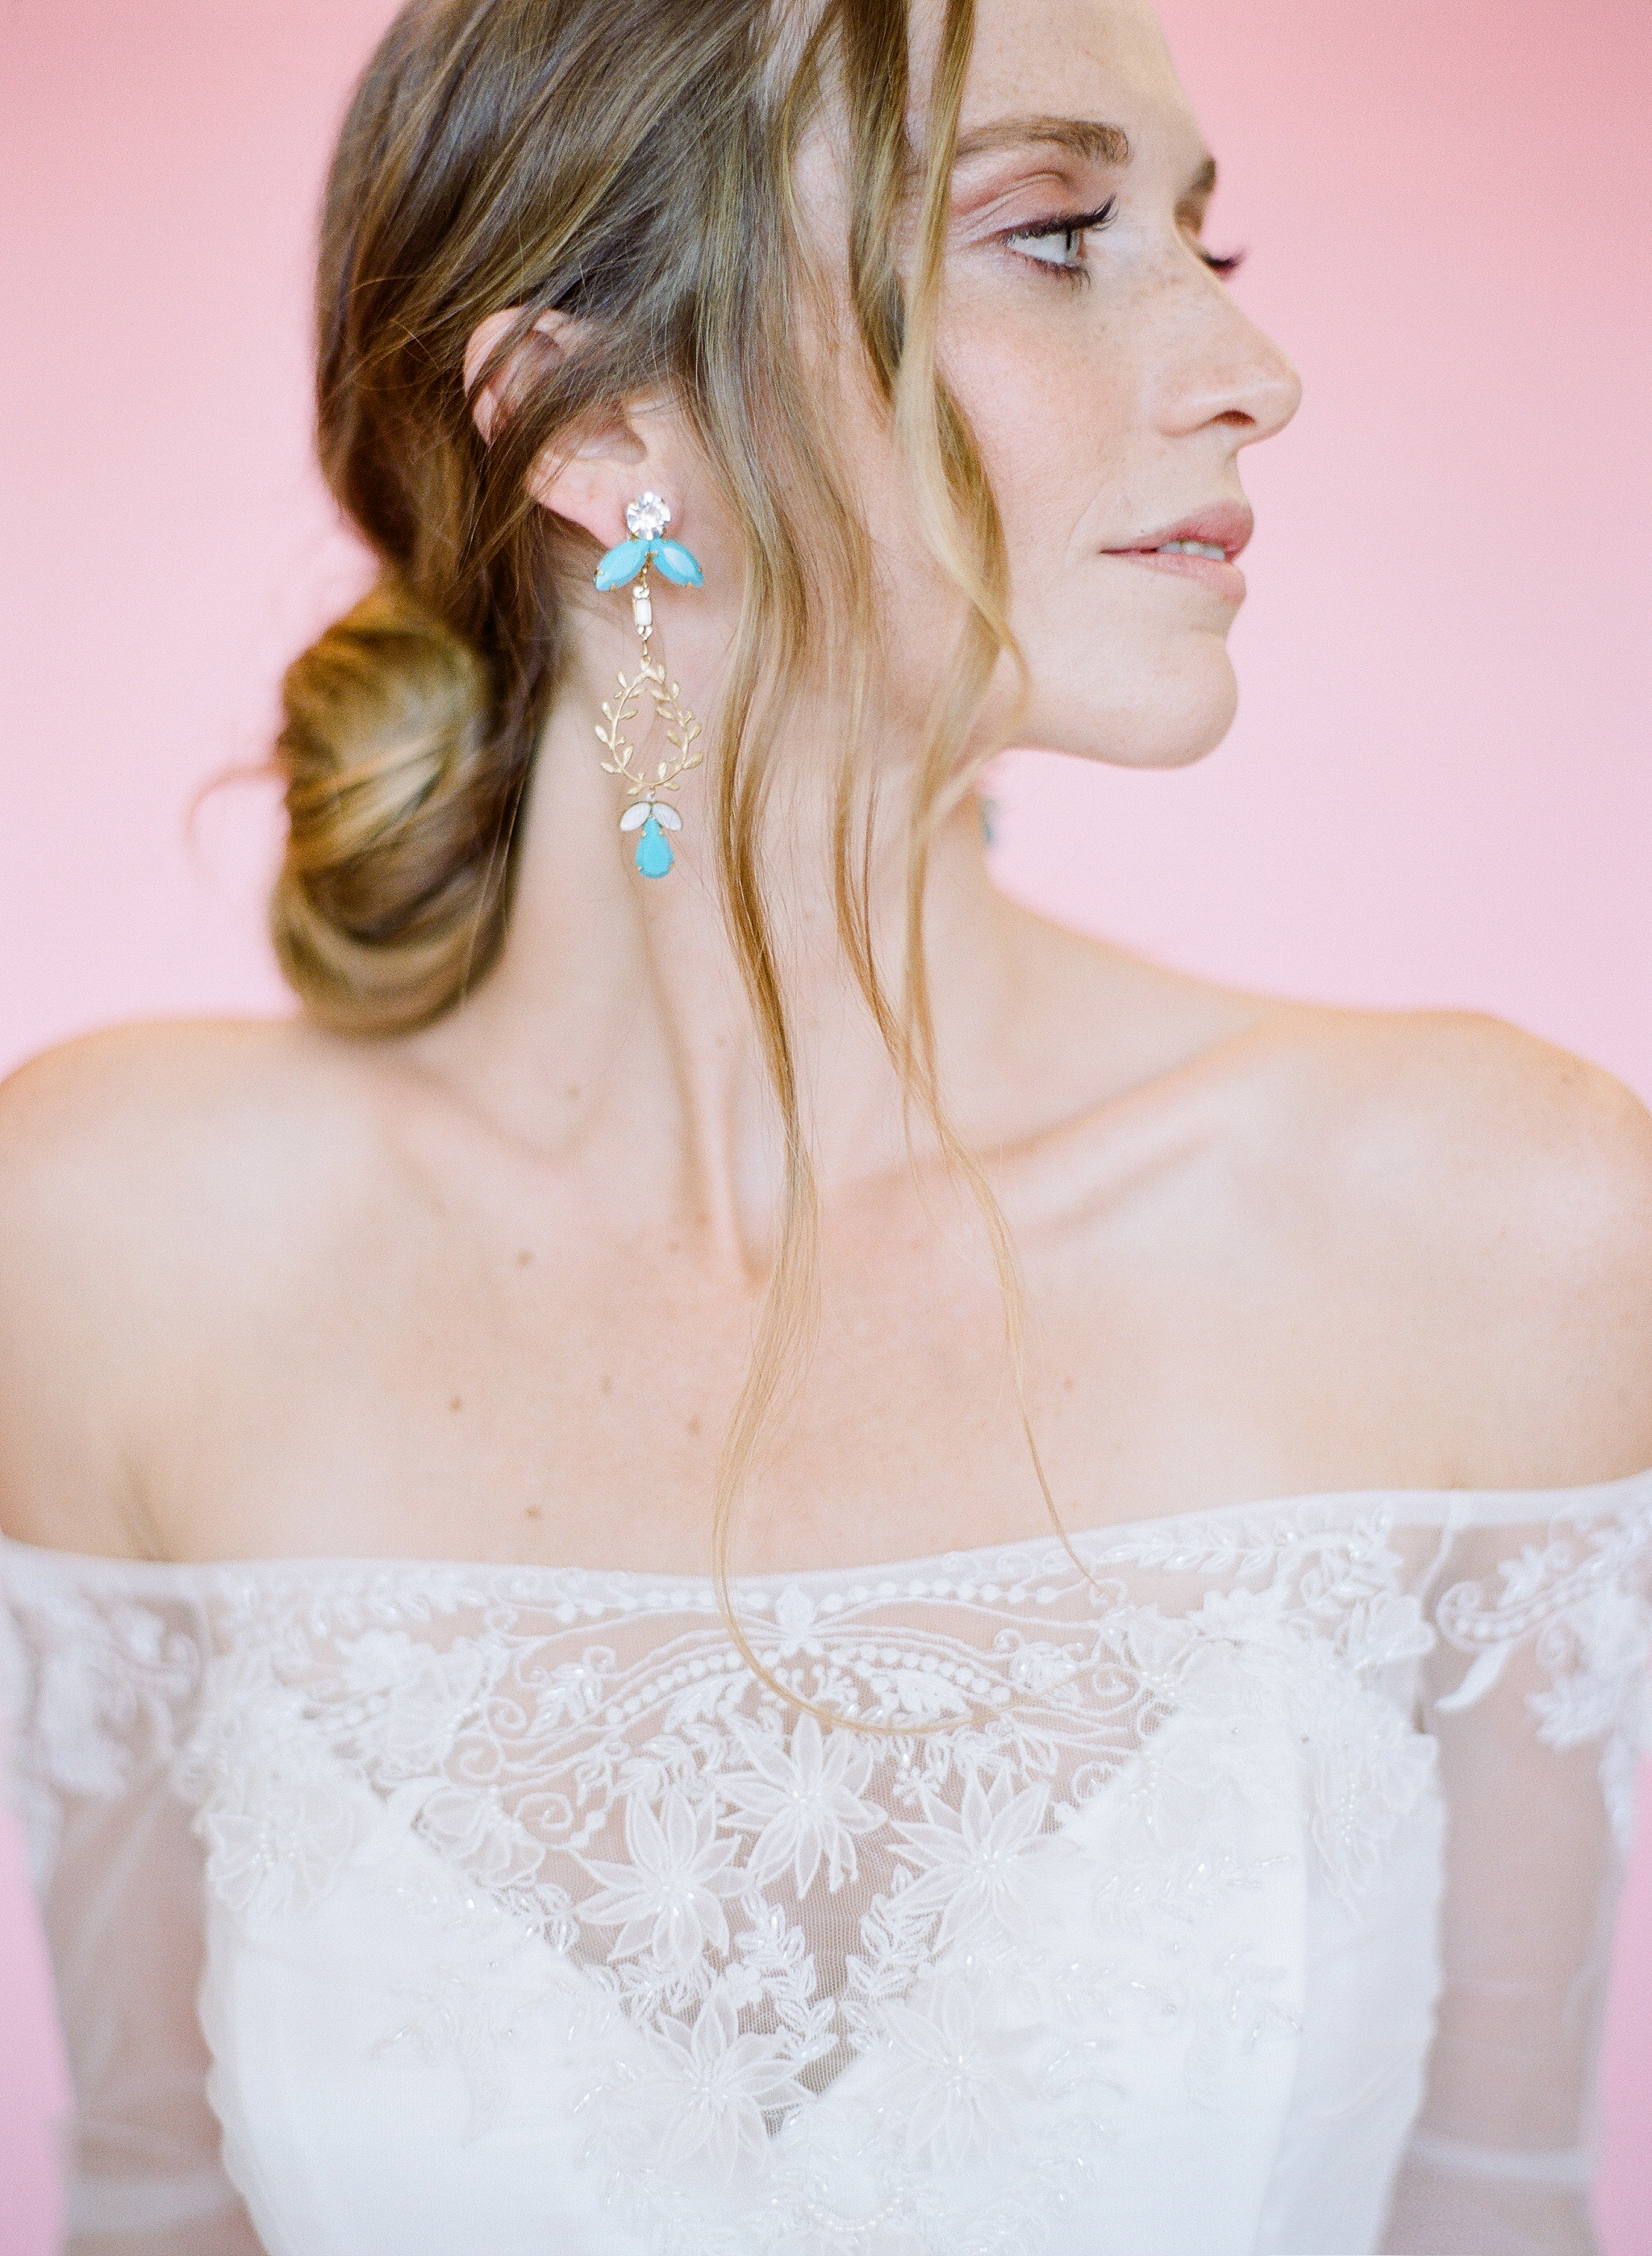 wa accessories flowers anthropologie wedding dairyland styling snohomish lace athenaandcamron camron rustic boho shoes athena s jewelers federal photographer flat suits bridal way madison rings david and inspiration melissa sweet dress ballet com lauren from asos custom earrings seattle romantic barn